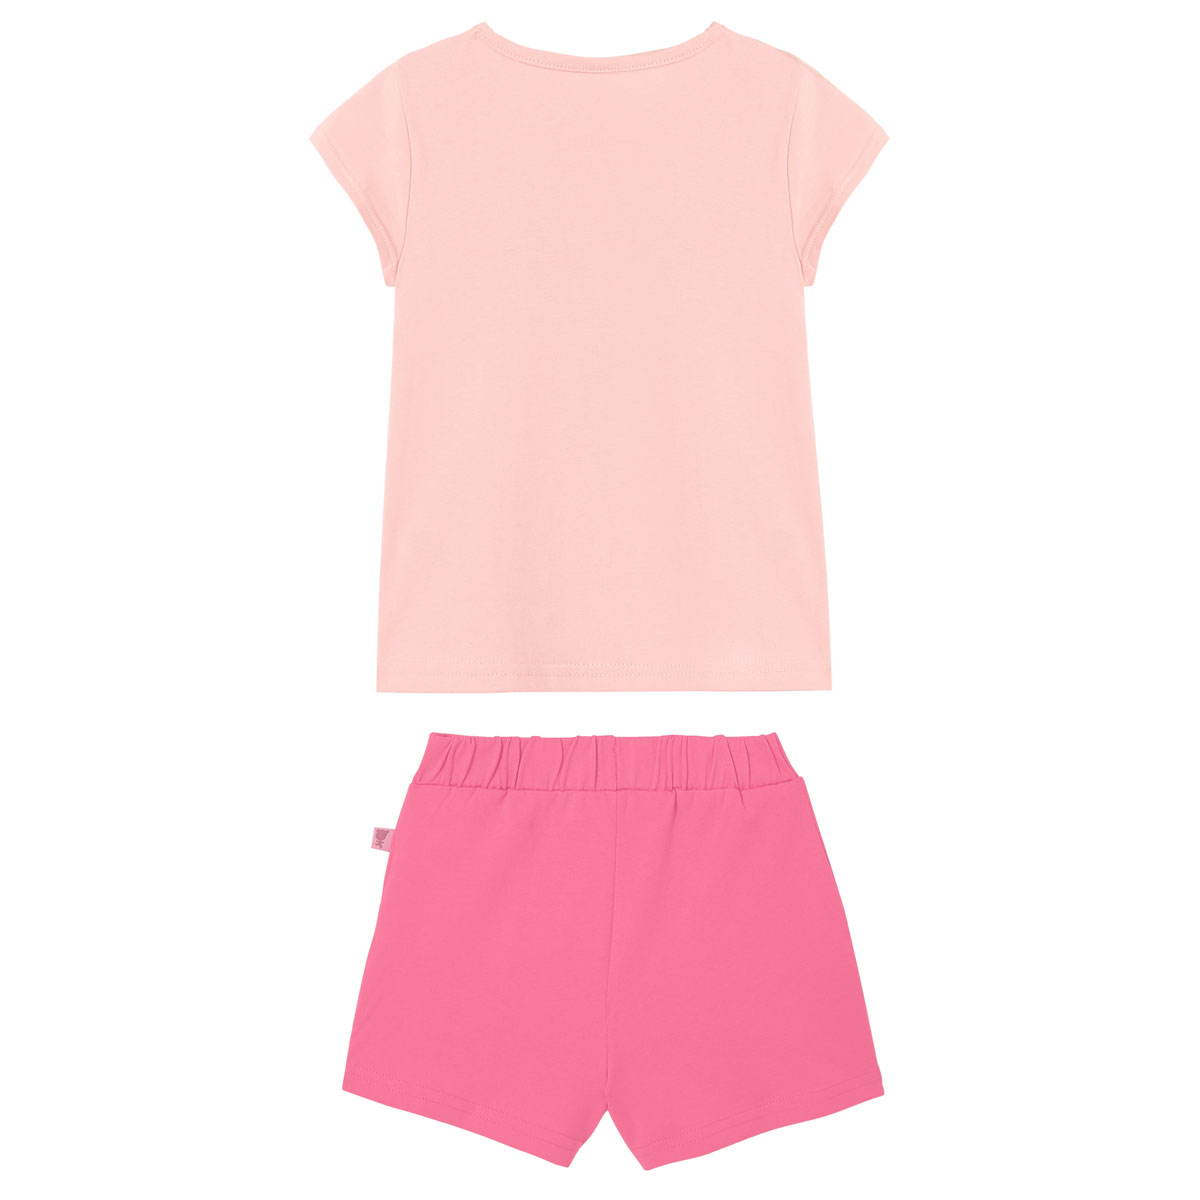 Pyjama fille manches courtes Rose Benghal dos